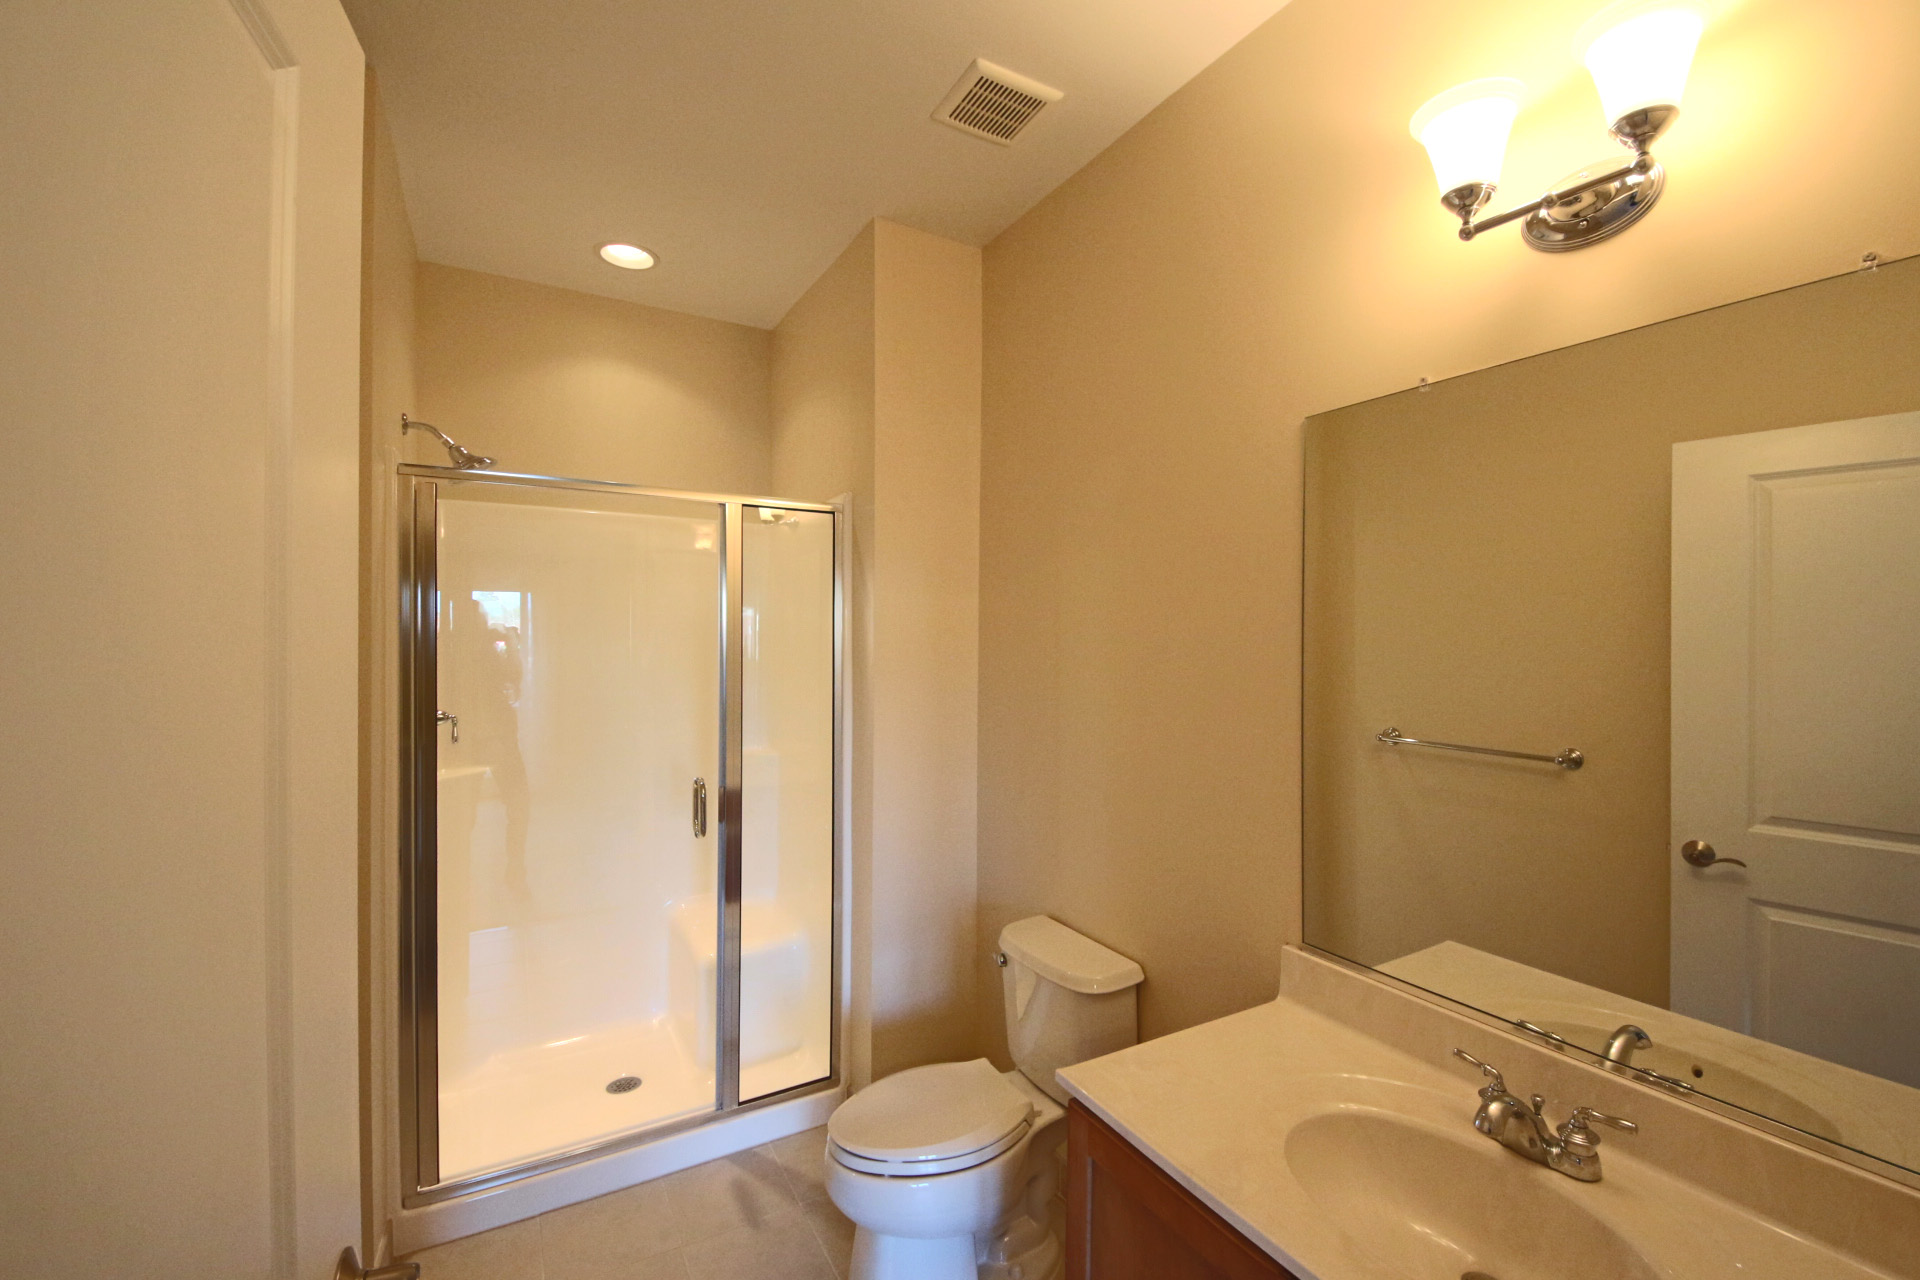 5. Bathroom 1